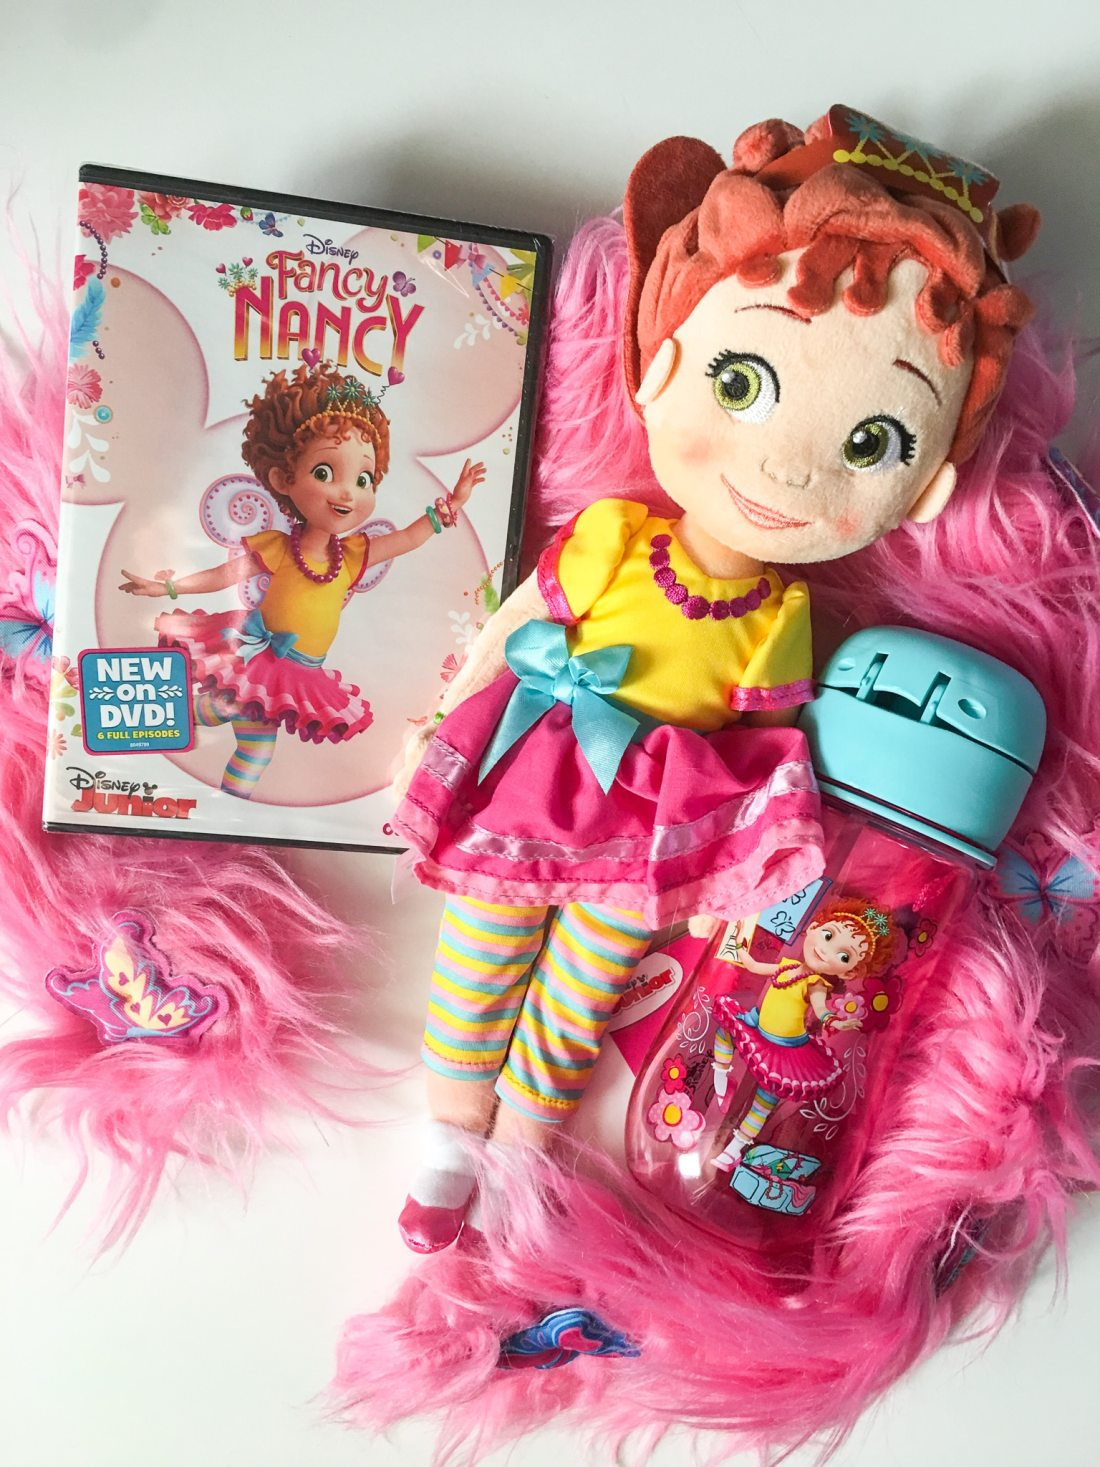 """Fancy Nancy DVD Plush Toy and Canteen. Grab some glitter, add a dash of """"ooh la la,"""" sprinkle in original songs and Voilà! Get set to pour on the fun with Fancy Nancy in her newest DVD from Disney Junior."""